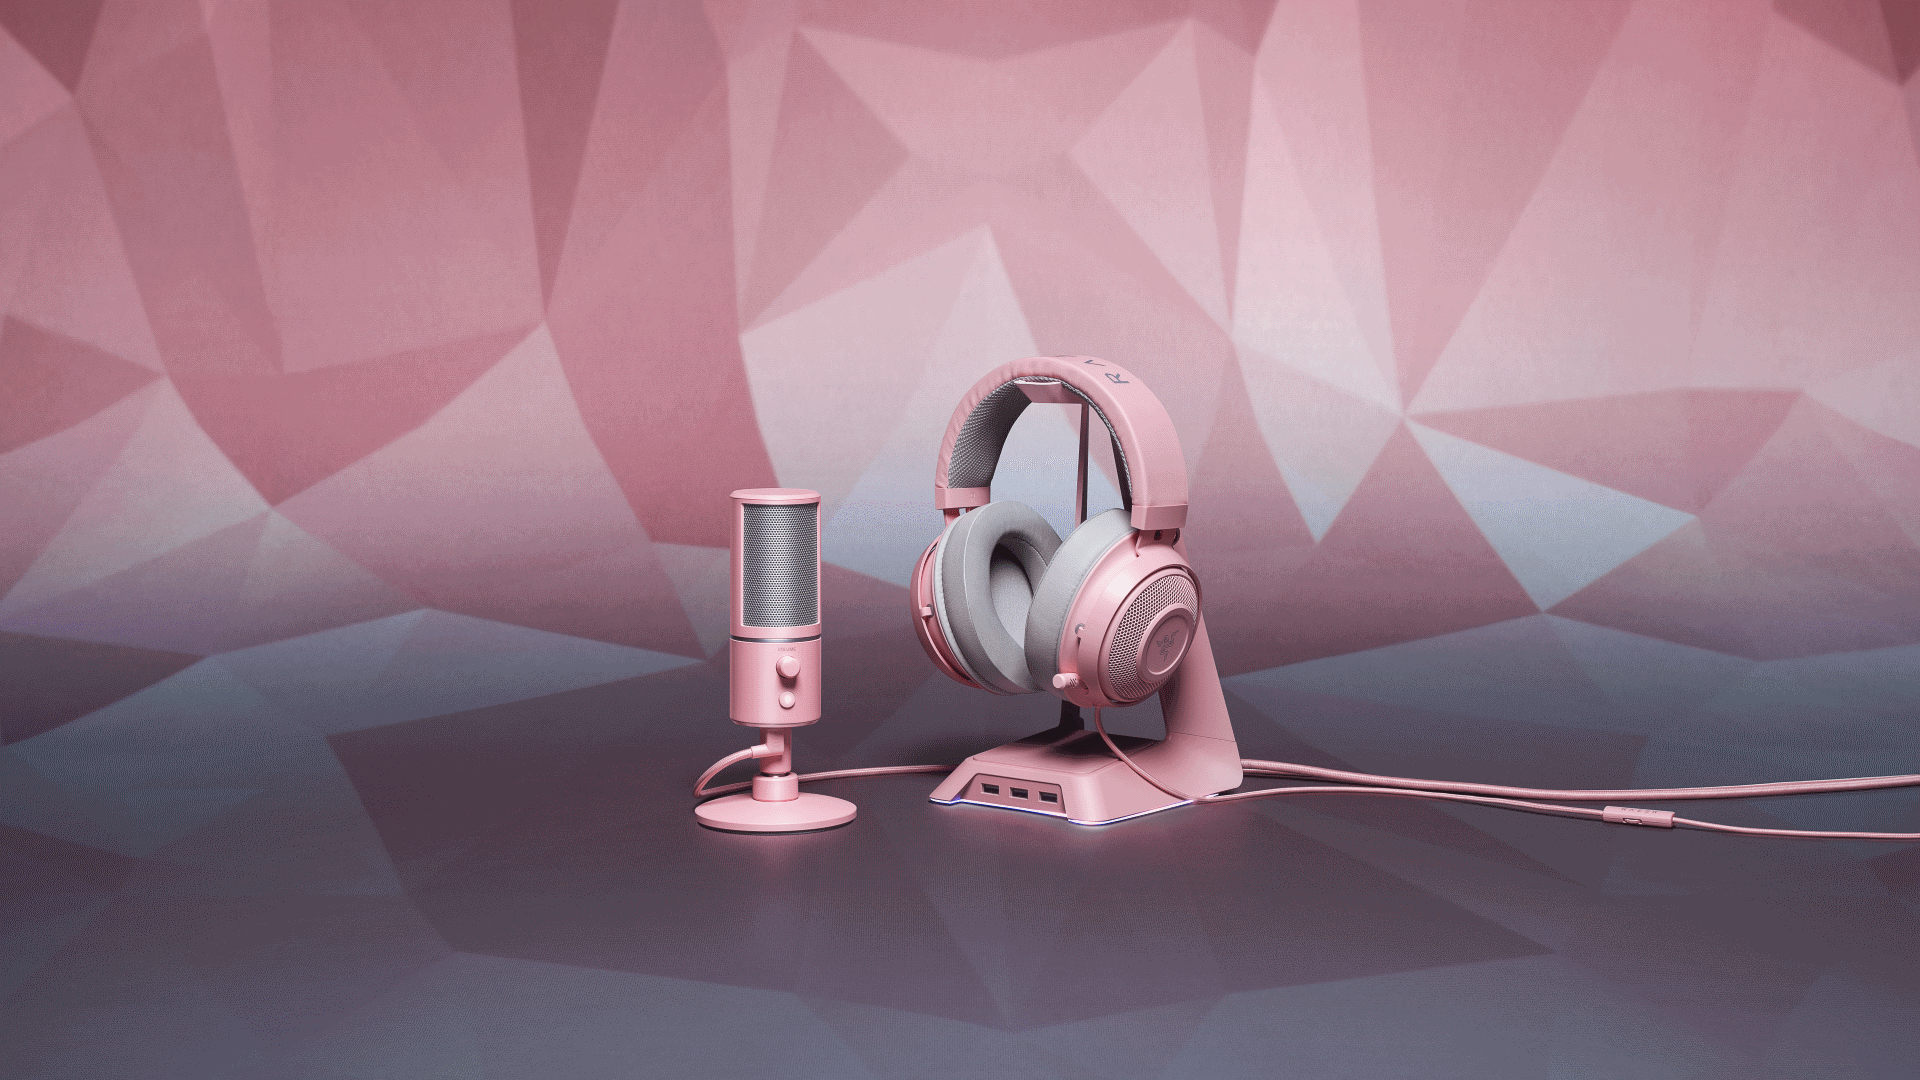 Razer Goes Pink For Valentines Day With New Blade Stealth